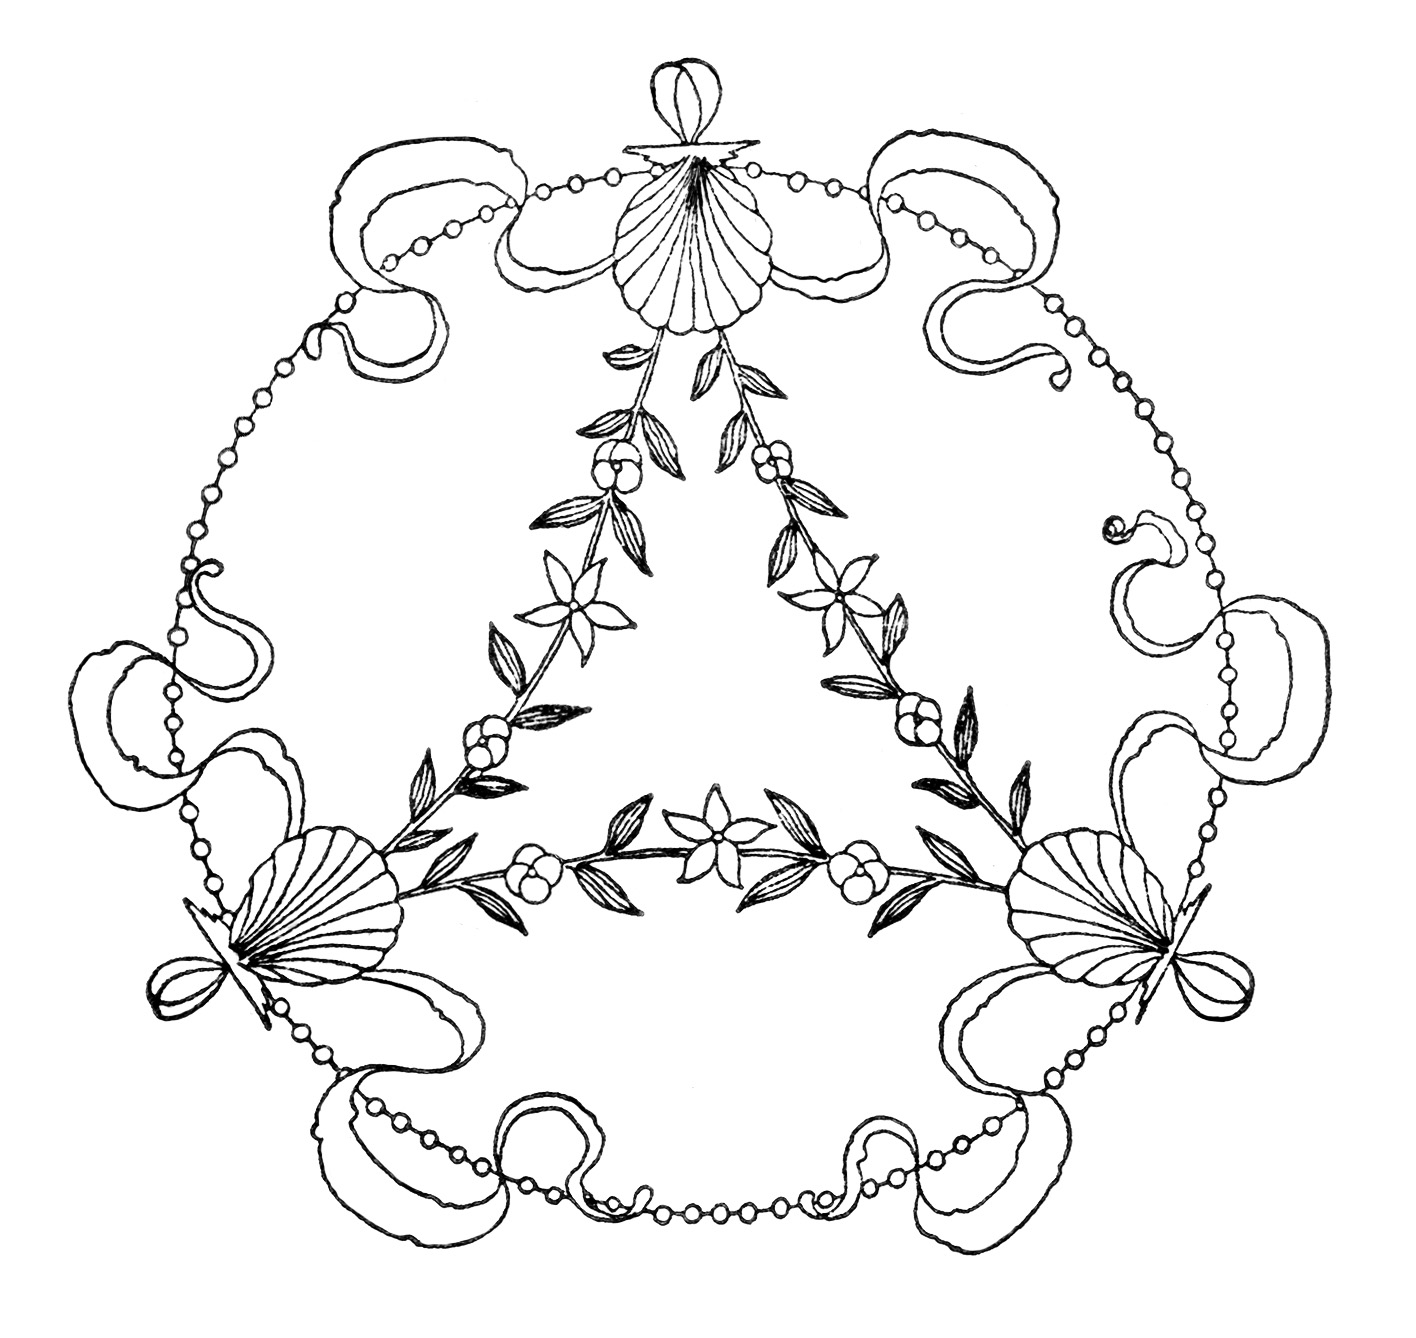 hight resolution of  vintage embroidery design free black and white clip art antique swirly sketch